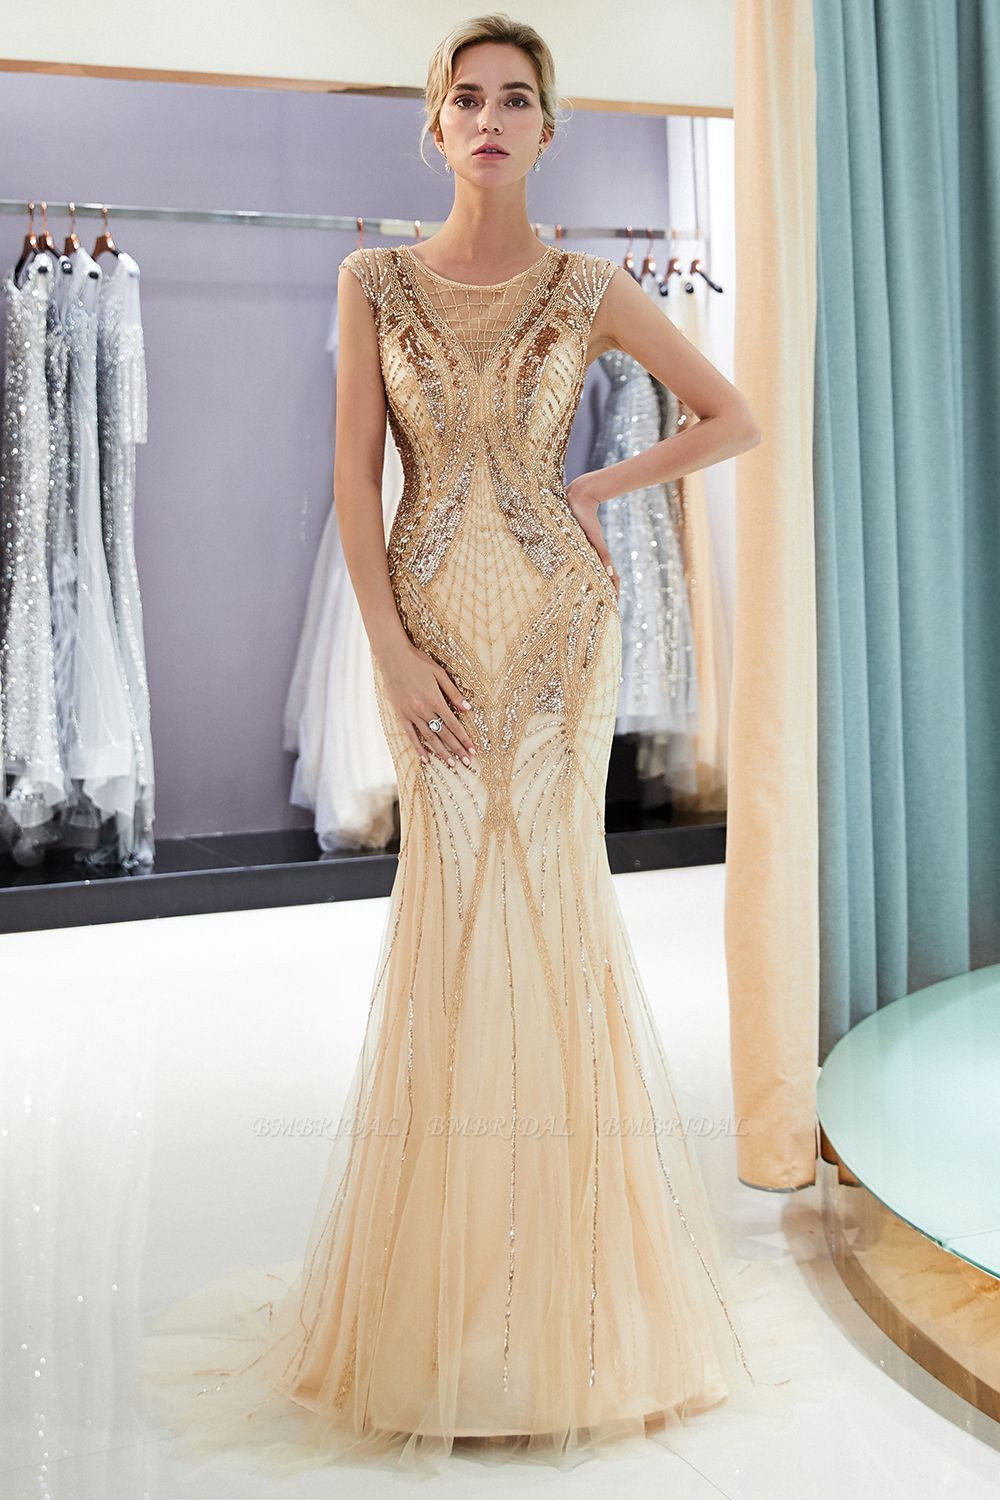 BMbridal Affordable Mermaid Sleeveless Golden Sequins Beading Formal Party Dresses